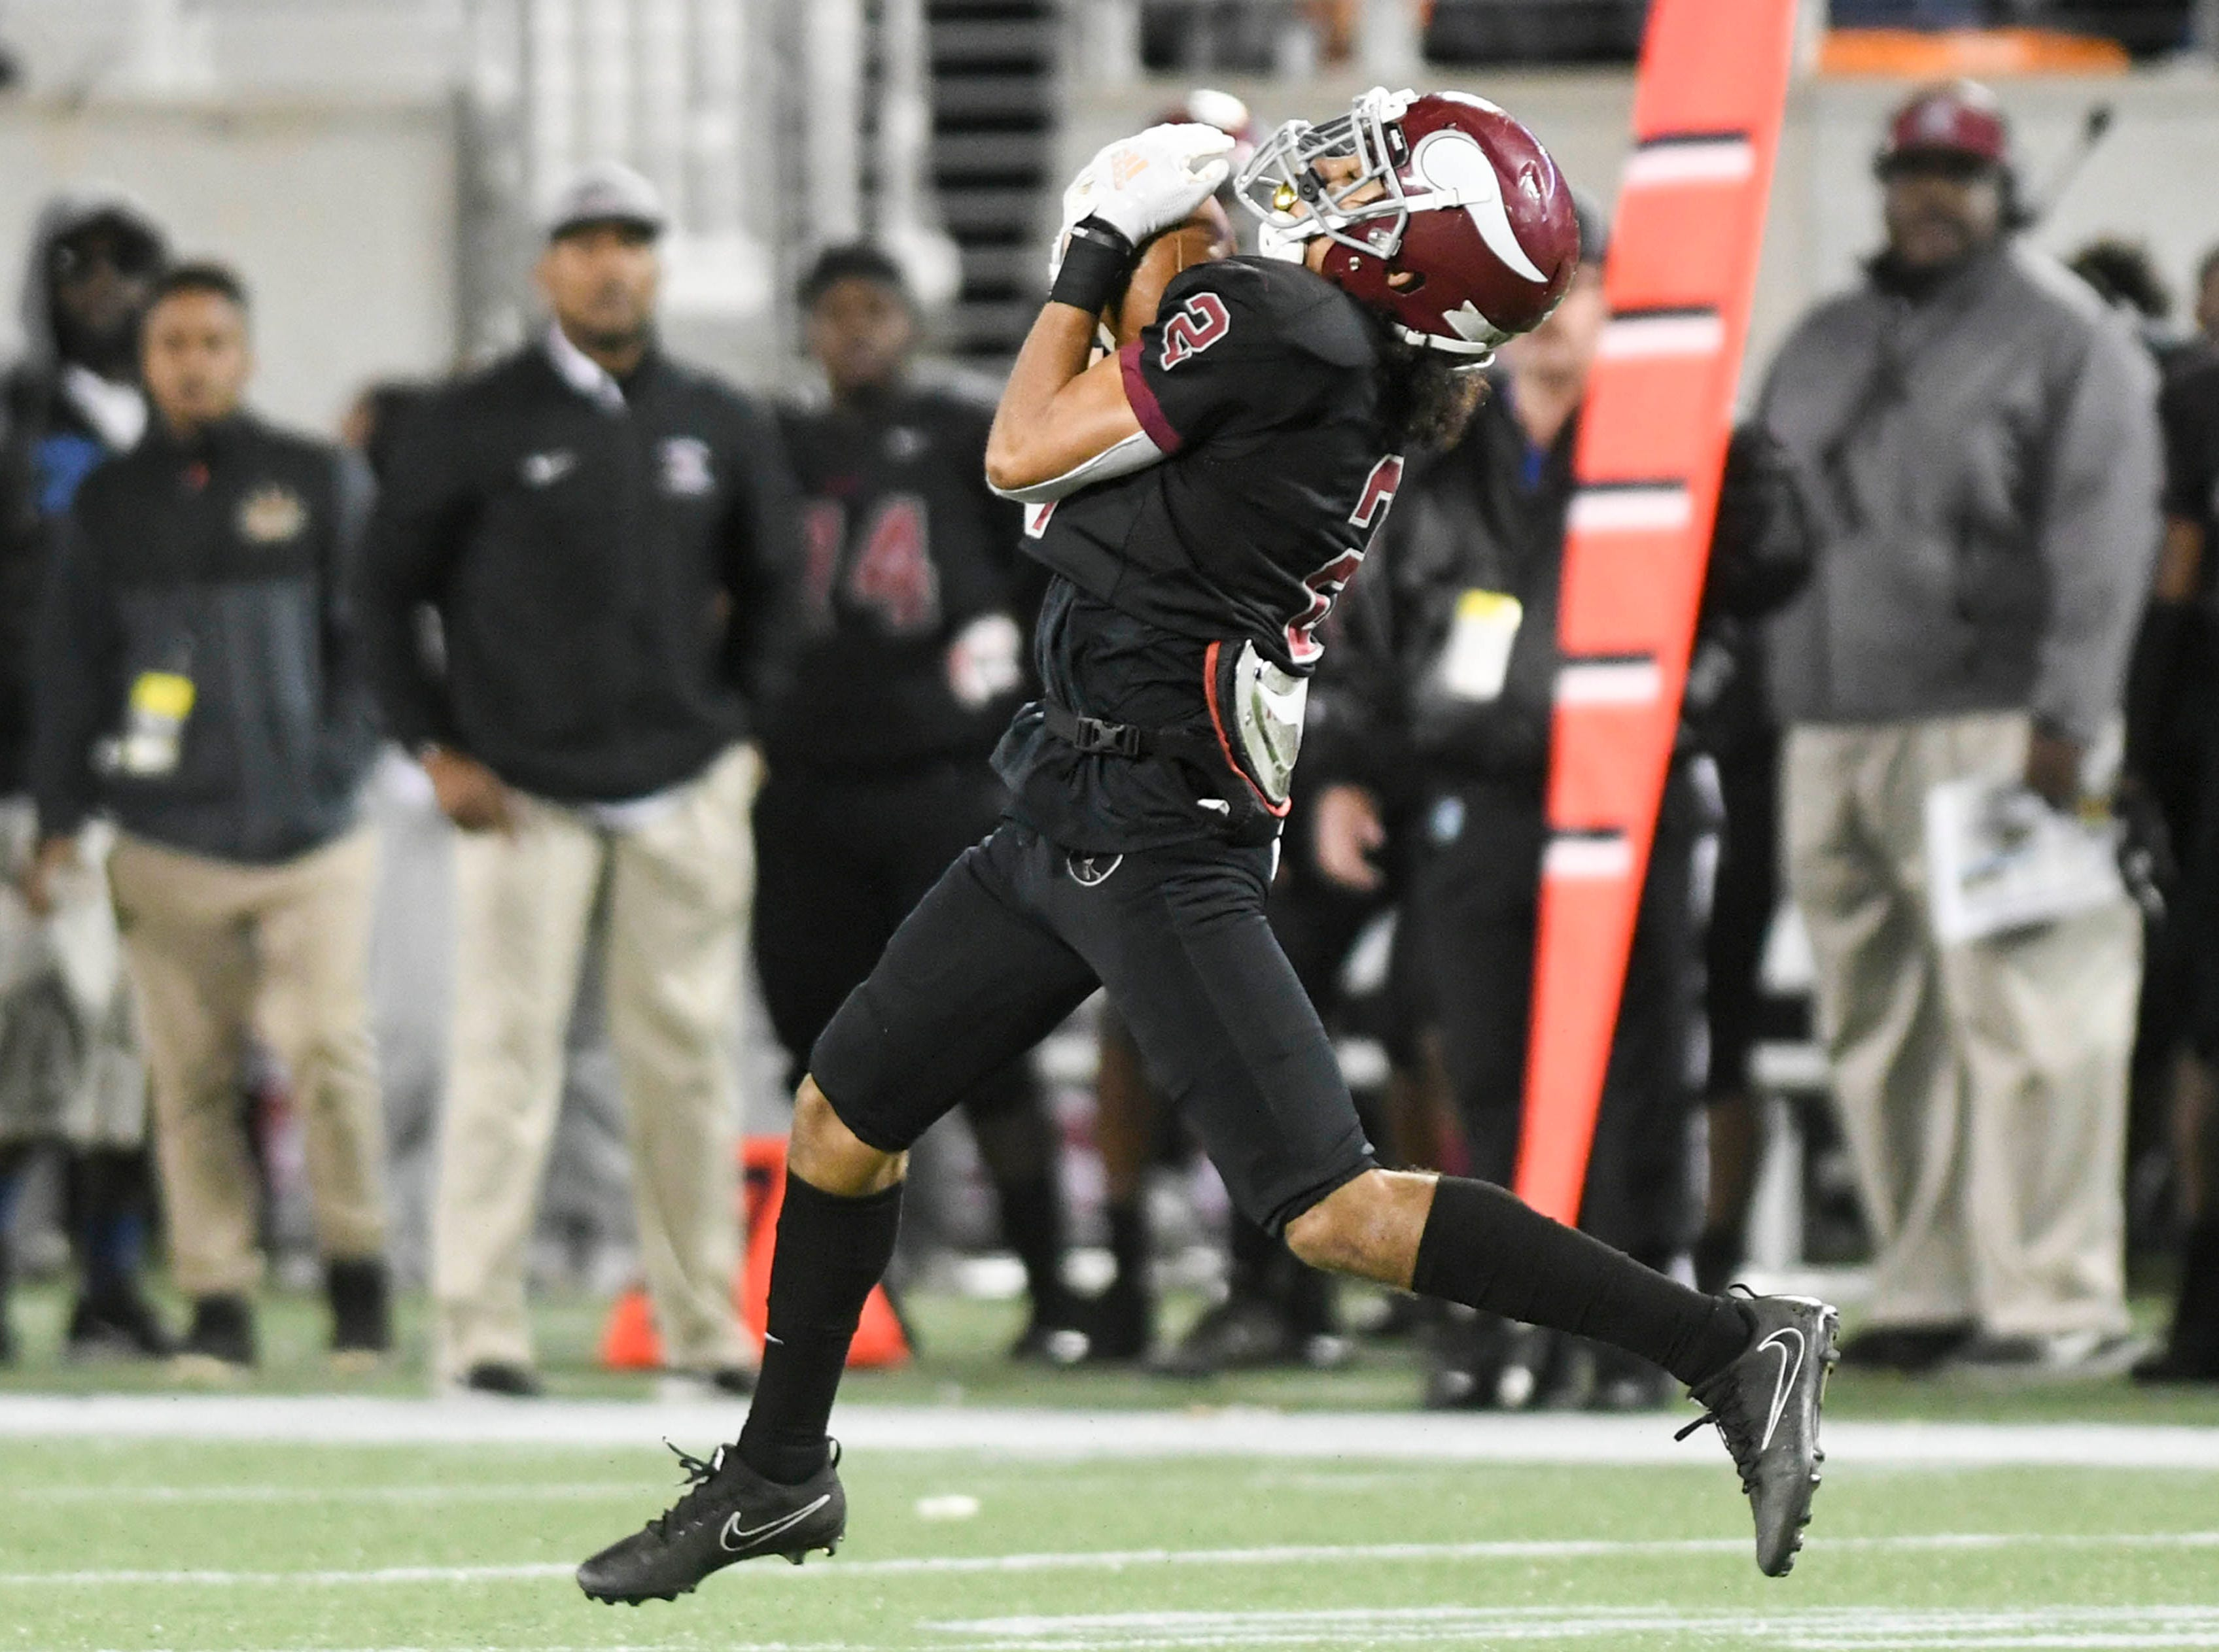 Treyvon Hobbs of Raines intercepts a Cocoa pass and returns it 66 yards for a touchdown during Thursday's Class 4A football state championship.